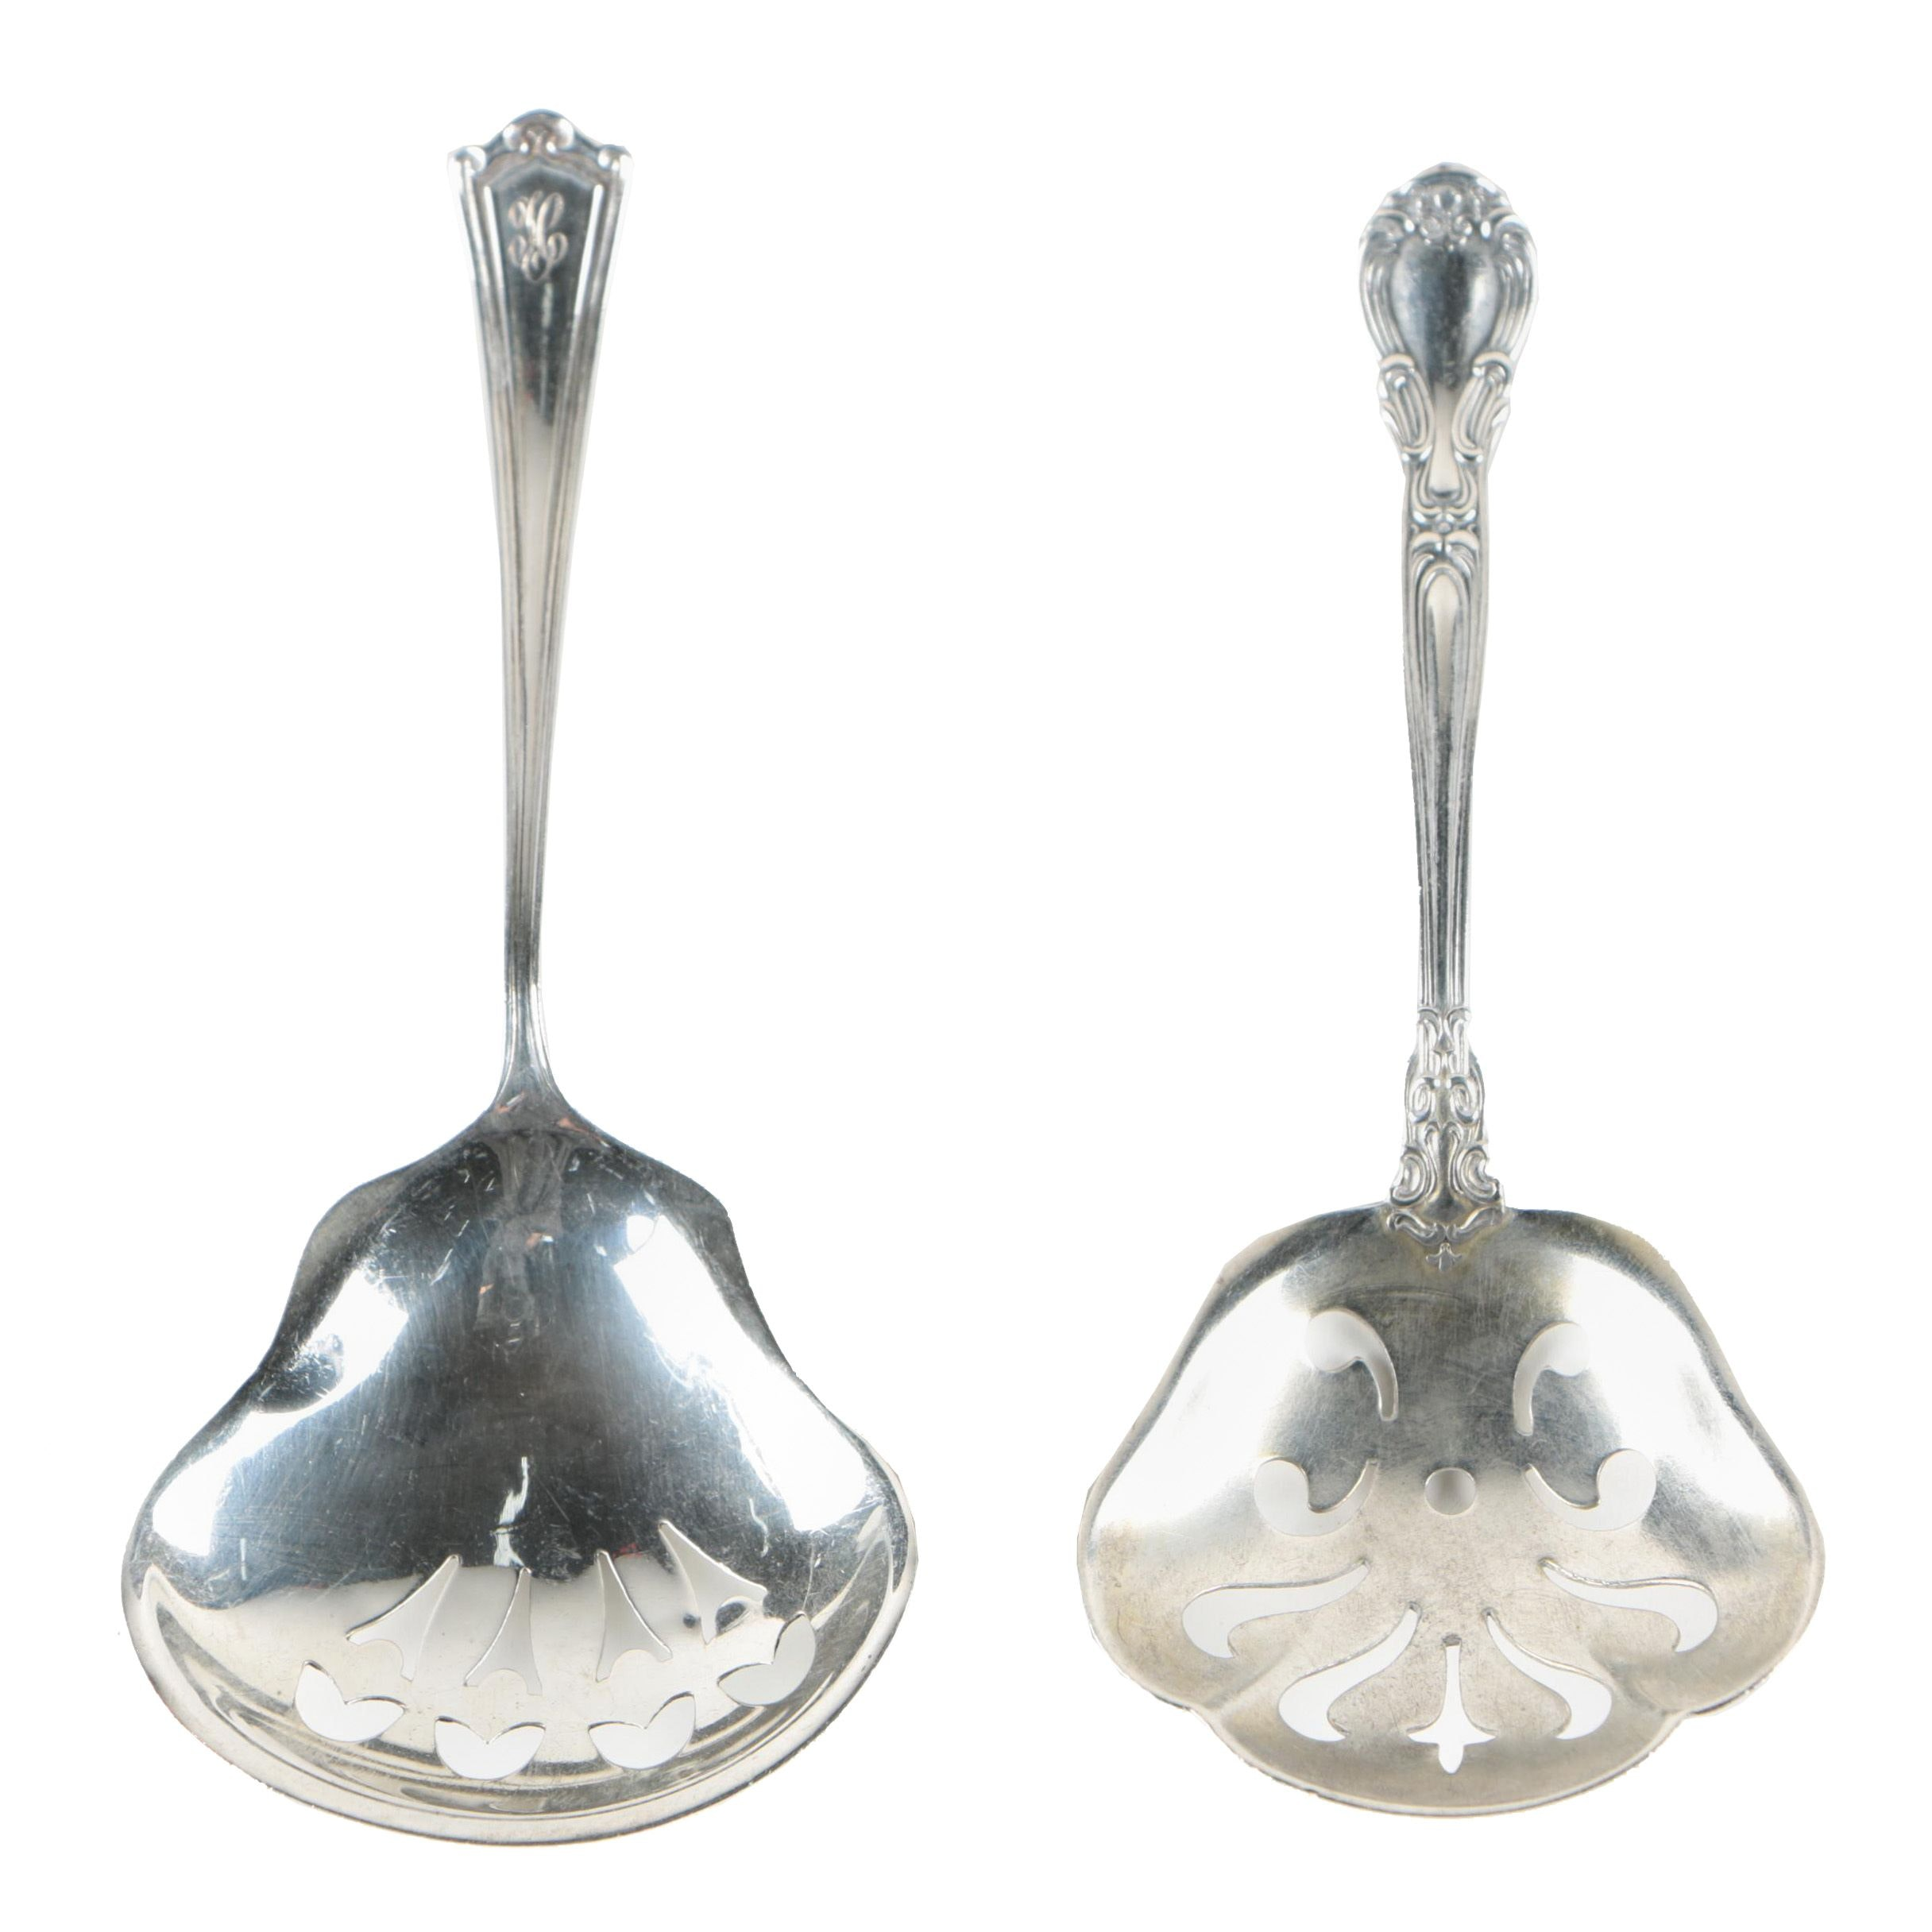 """Gorham """"Chantilly"""" Sterling Bonbon Spoon and Baker Manchester Nut Spoon"""